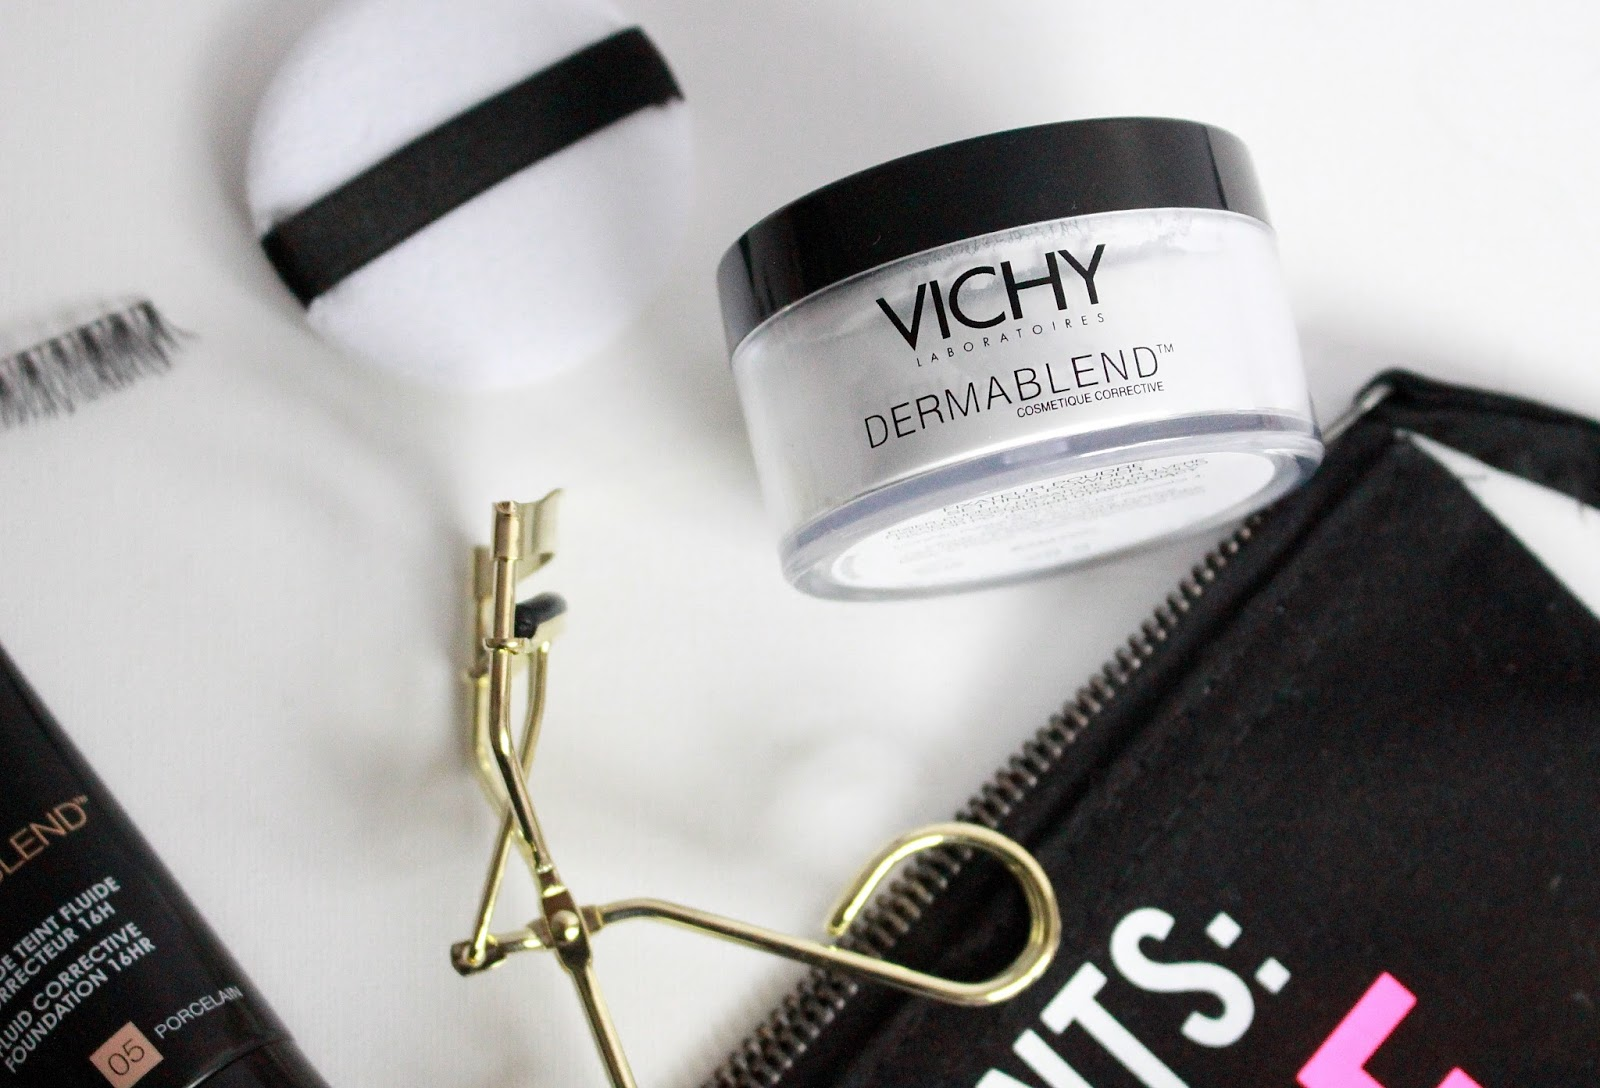 Vichy Dermablend, Loreal Foundation Review, Dermablend Review, Blogger Mail, Flatlay,Vichy setting Powder Review